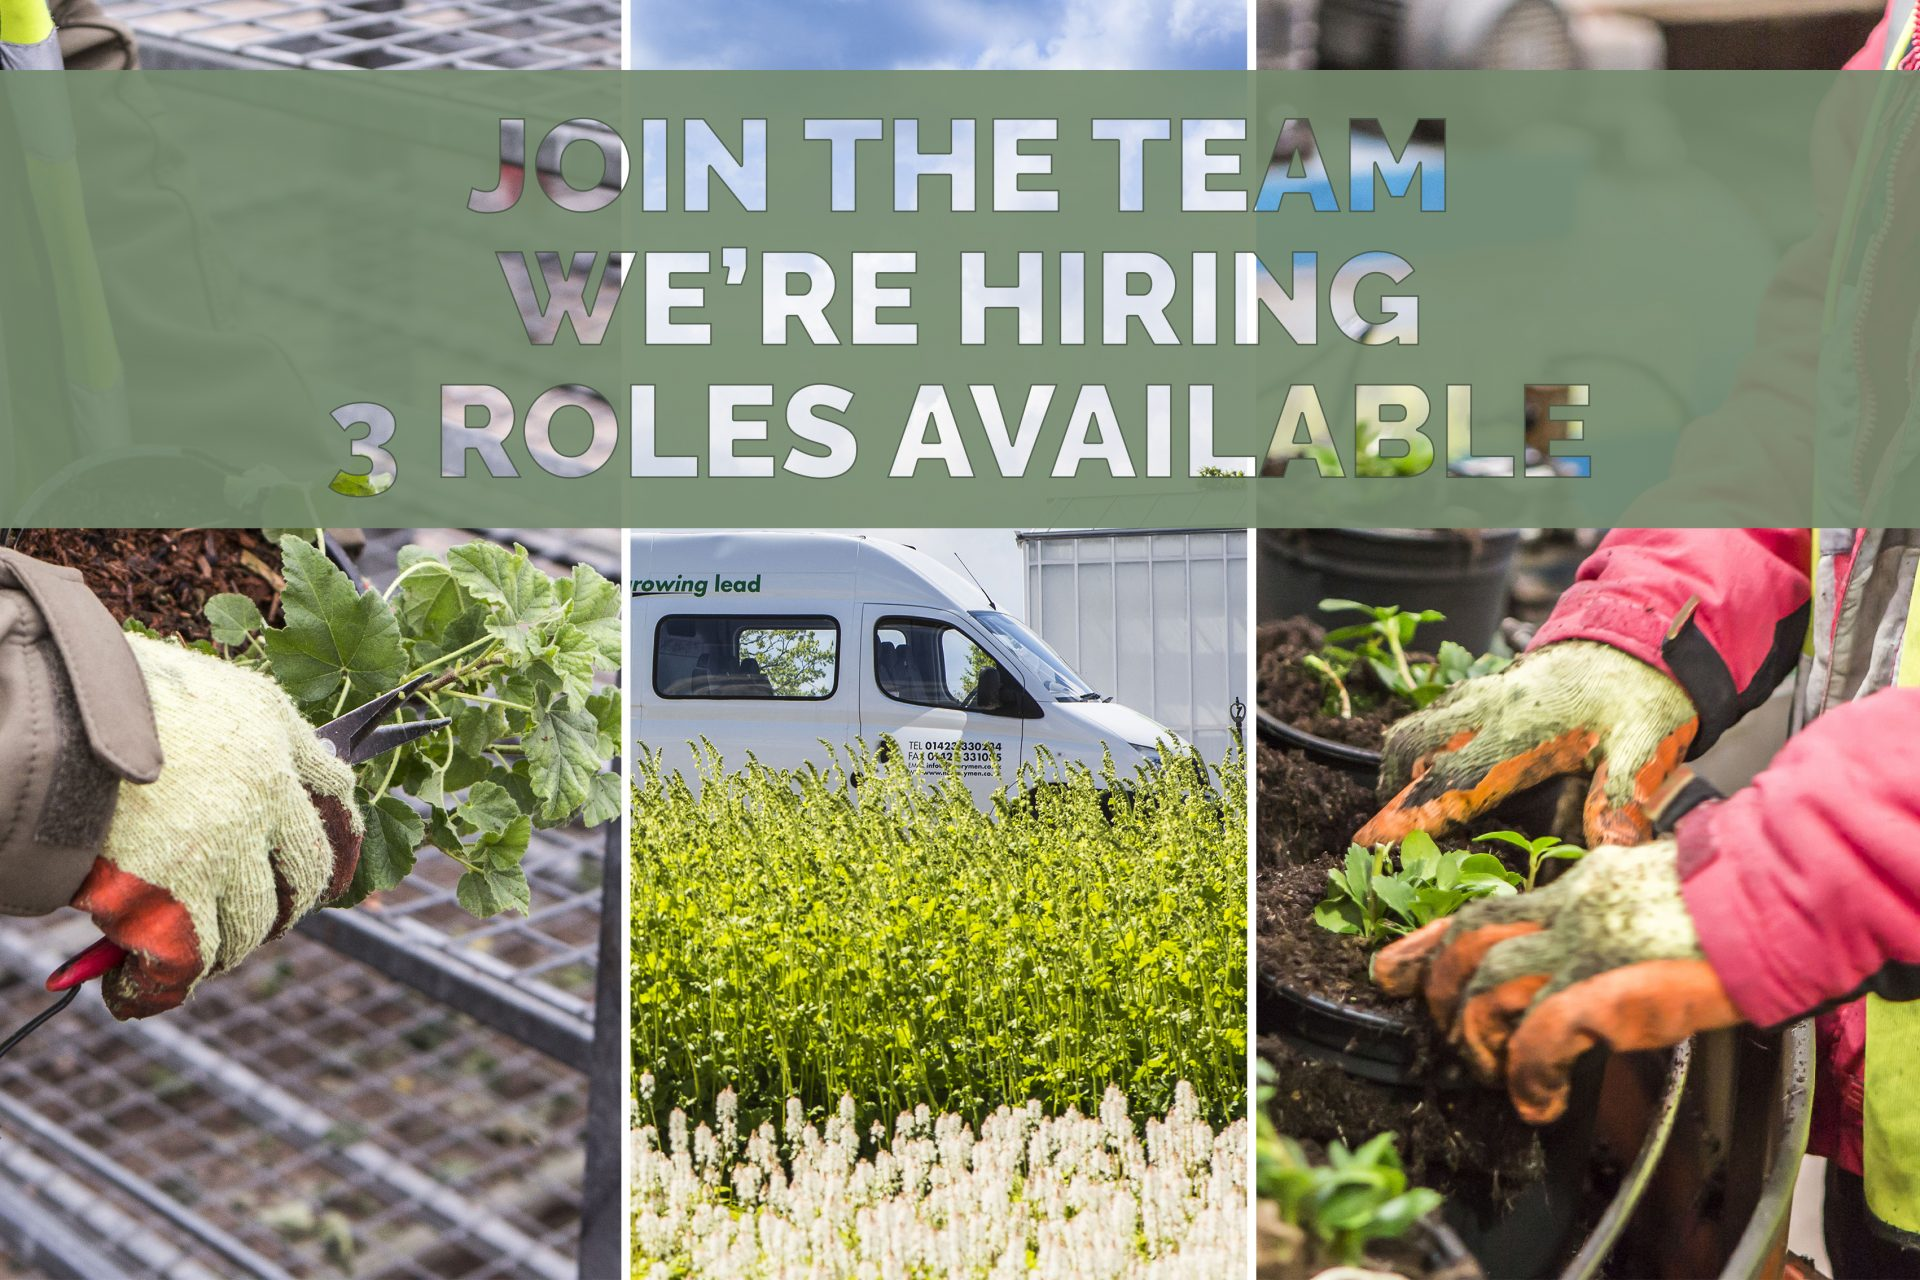 Join the team we're hiring - 3 roles available